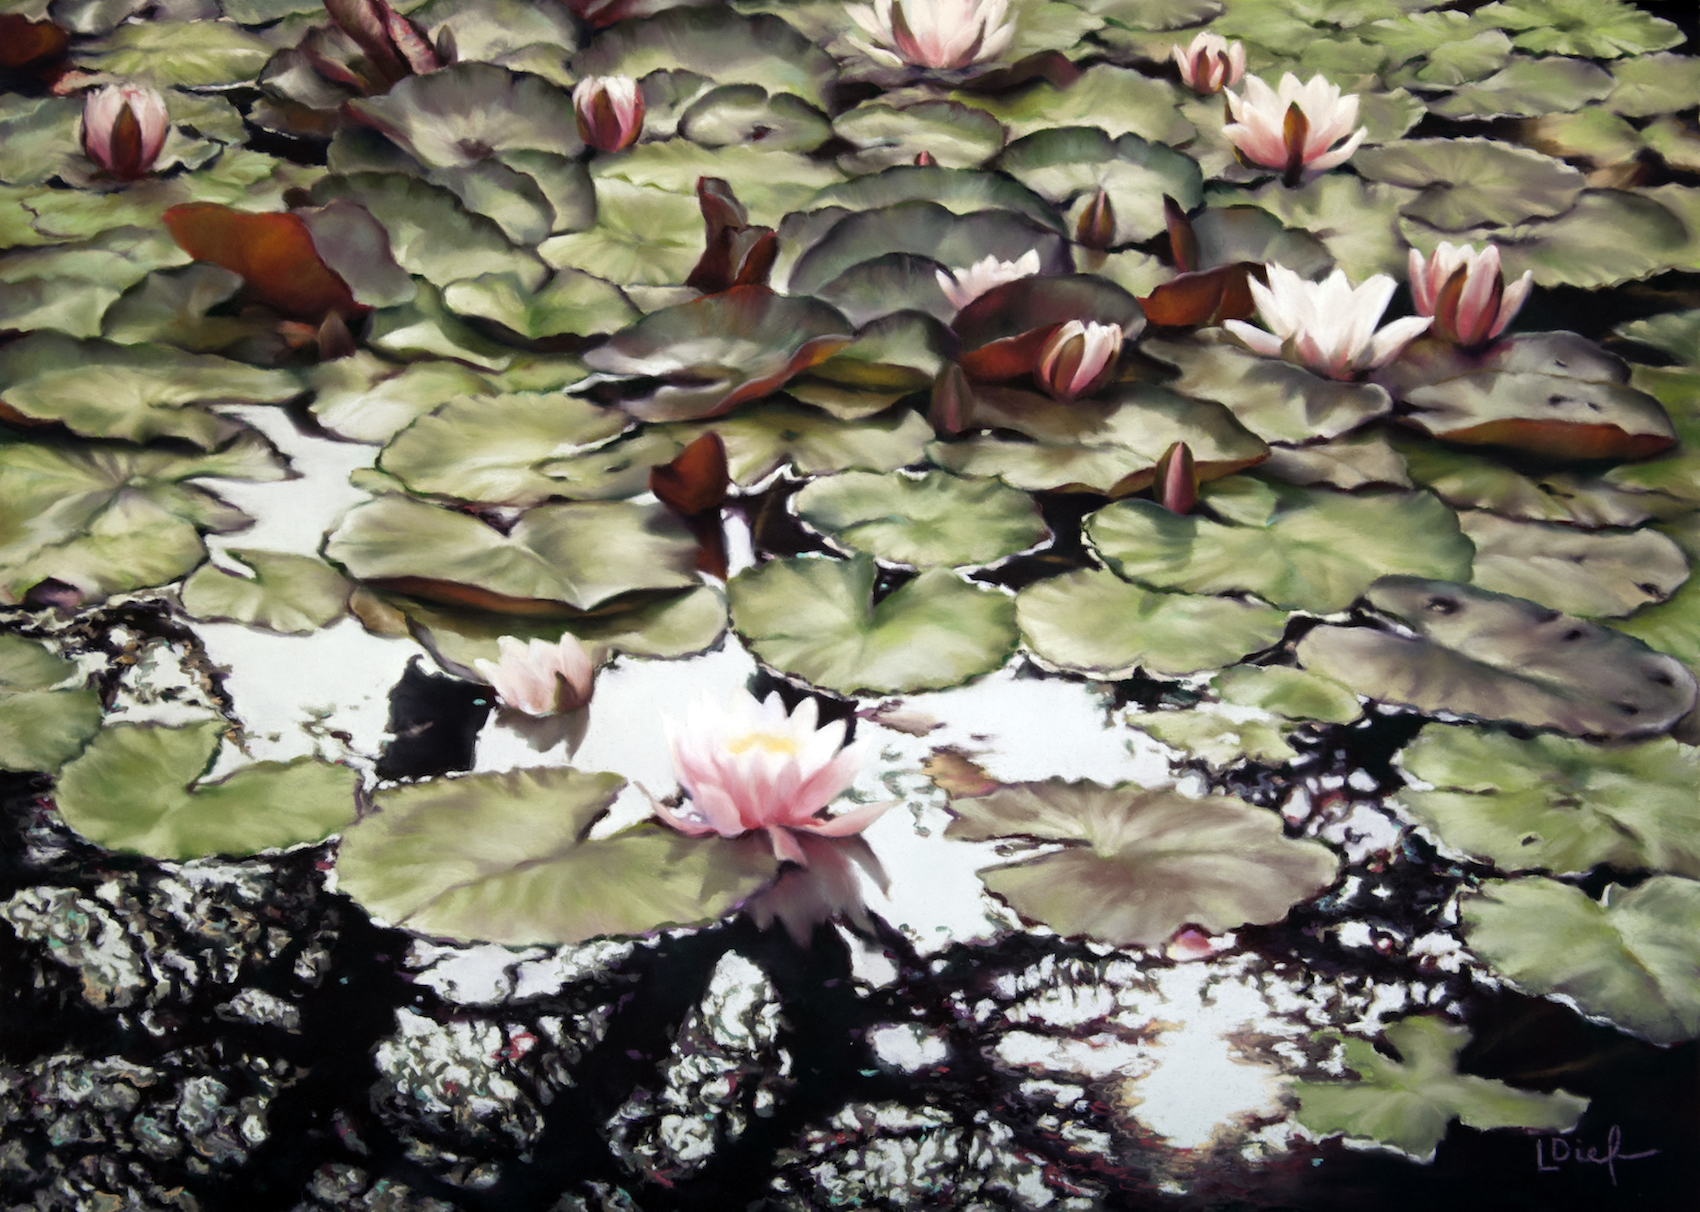 """Lyn Diefenbach, """"Upon Reflection,"""" Oct 2016, Pastel on Fisher 400, 19 x 27 in. Sold. I'm captivated by reflections wherever they turn up."""